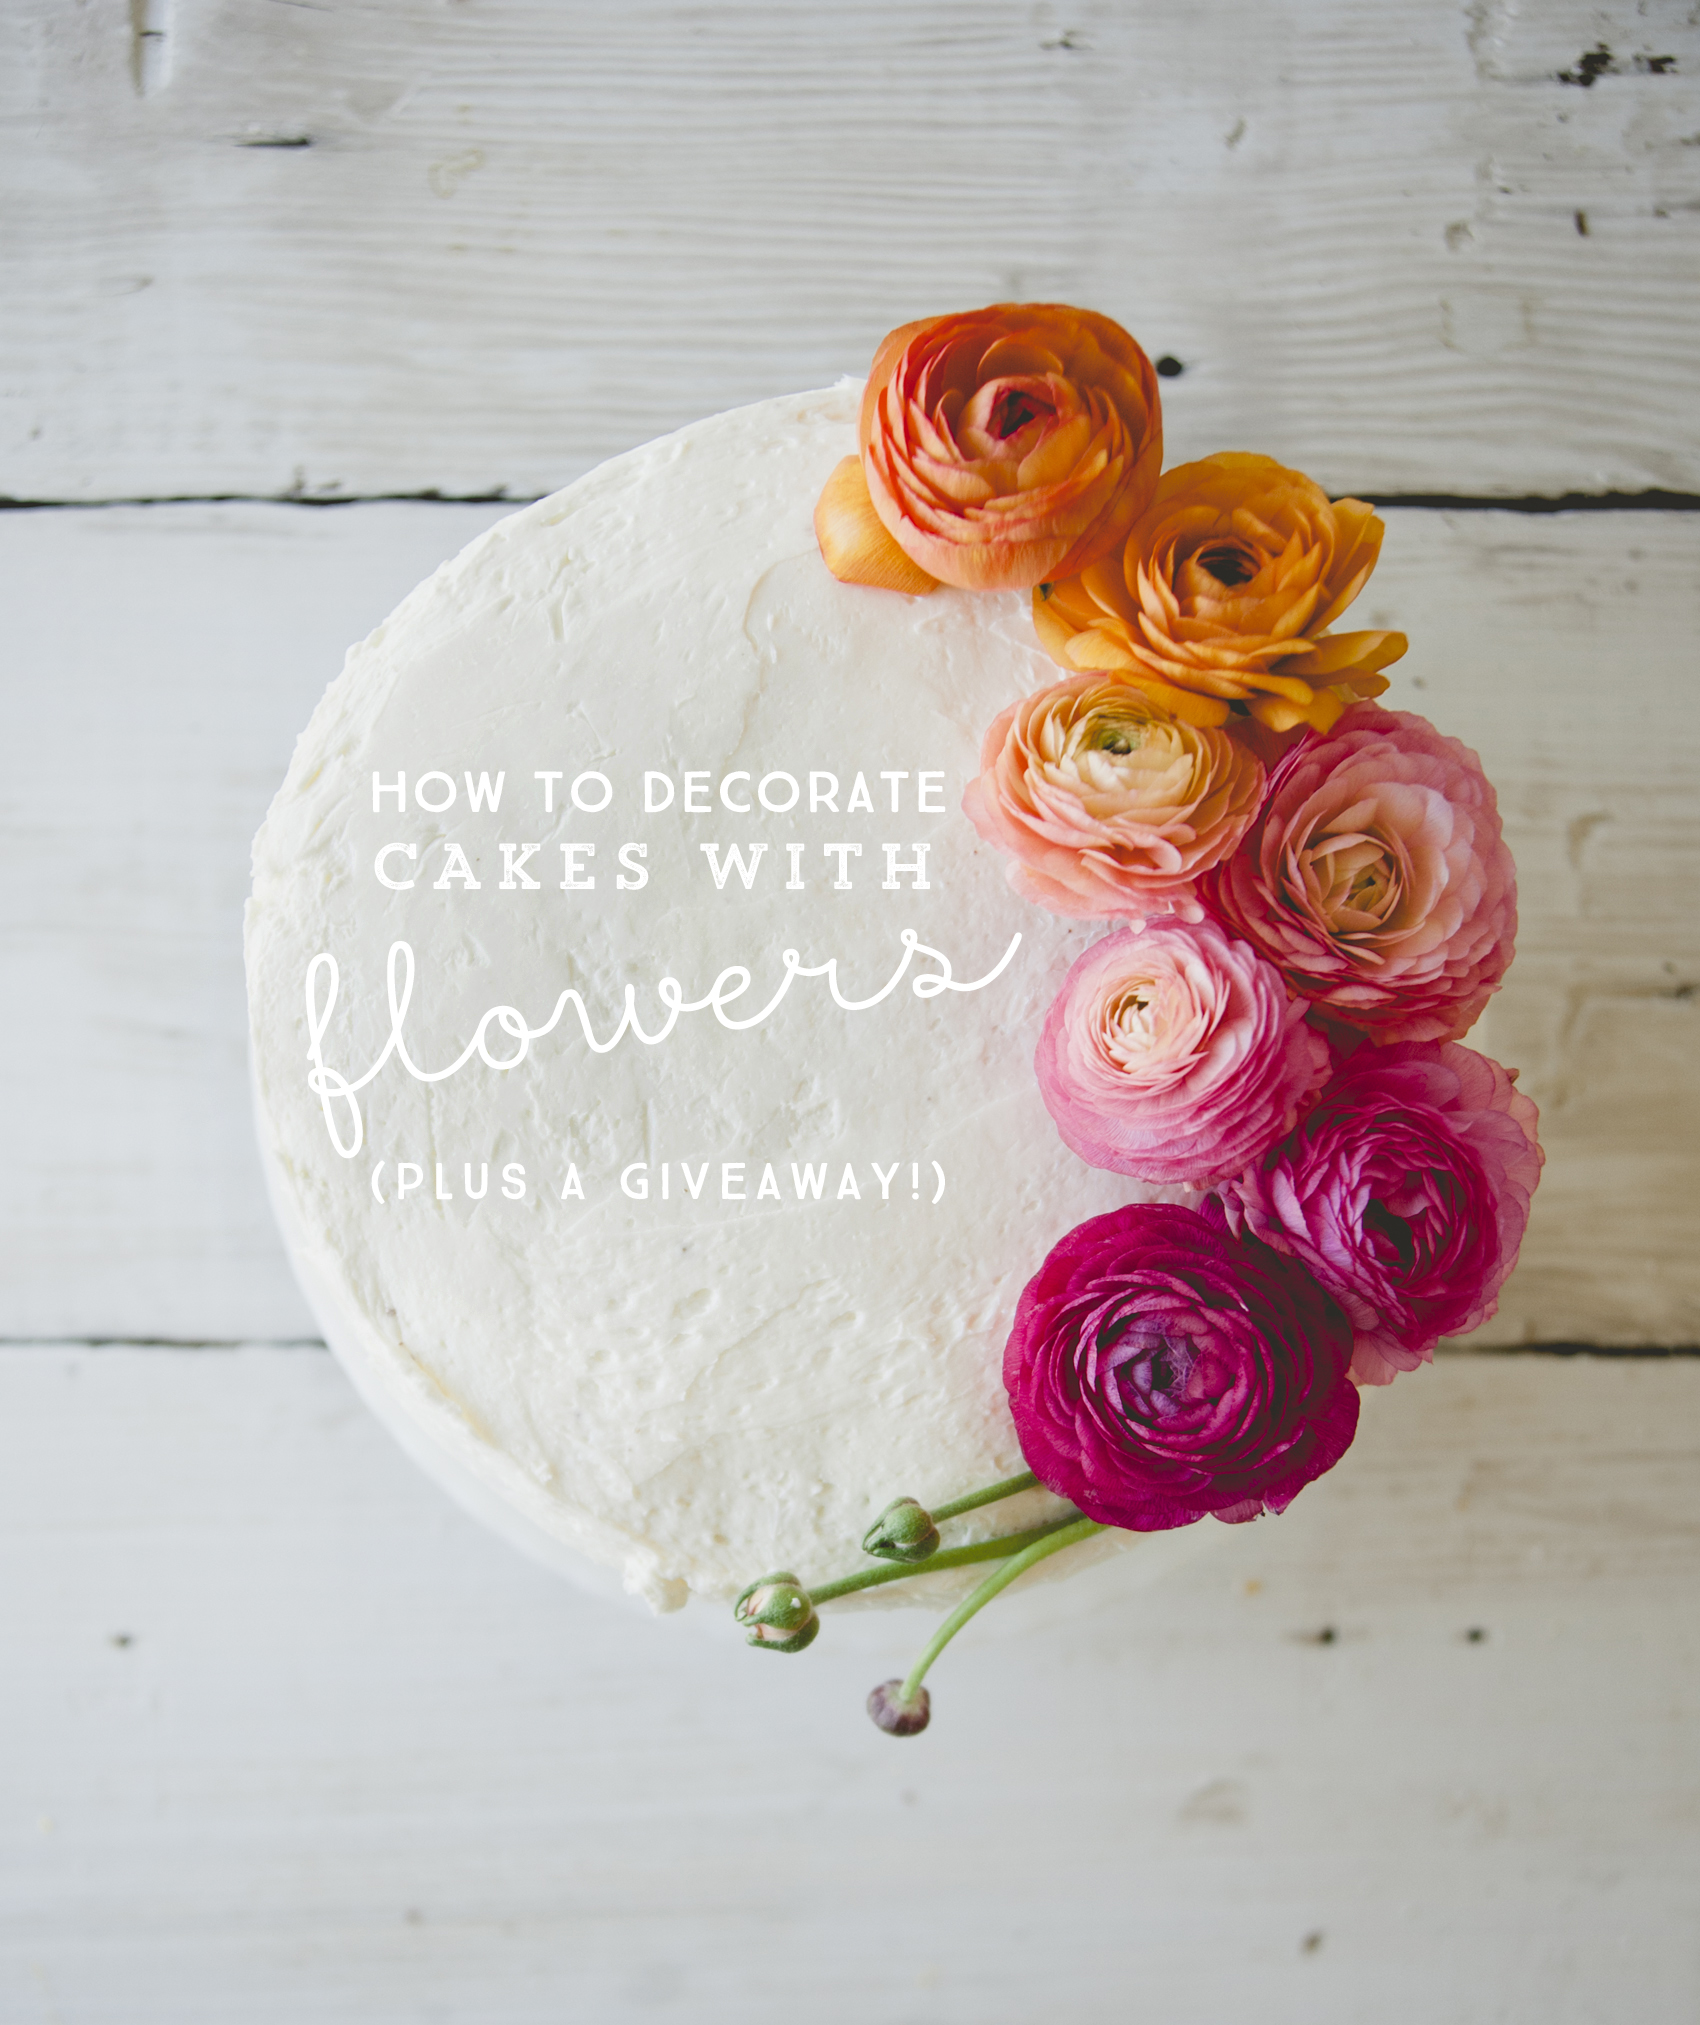 HOW TO DECORATE A CAKE WITH FLOWERS - The Kitchy Kitchen